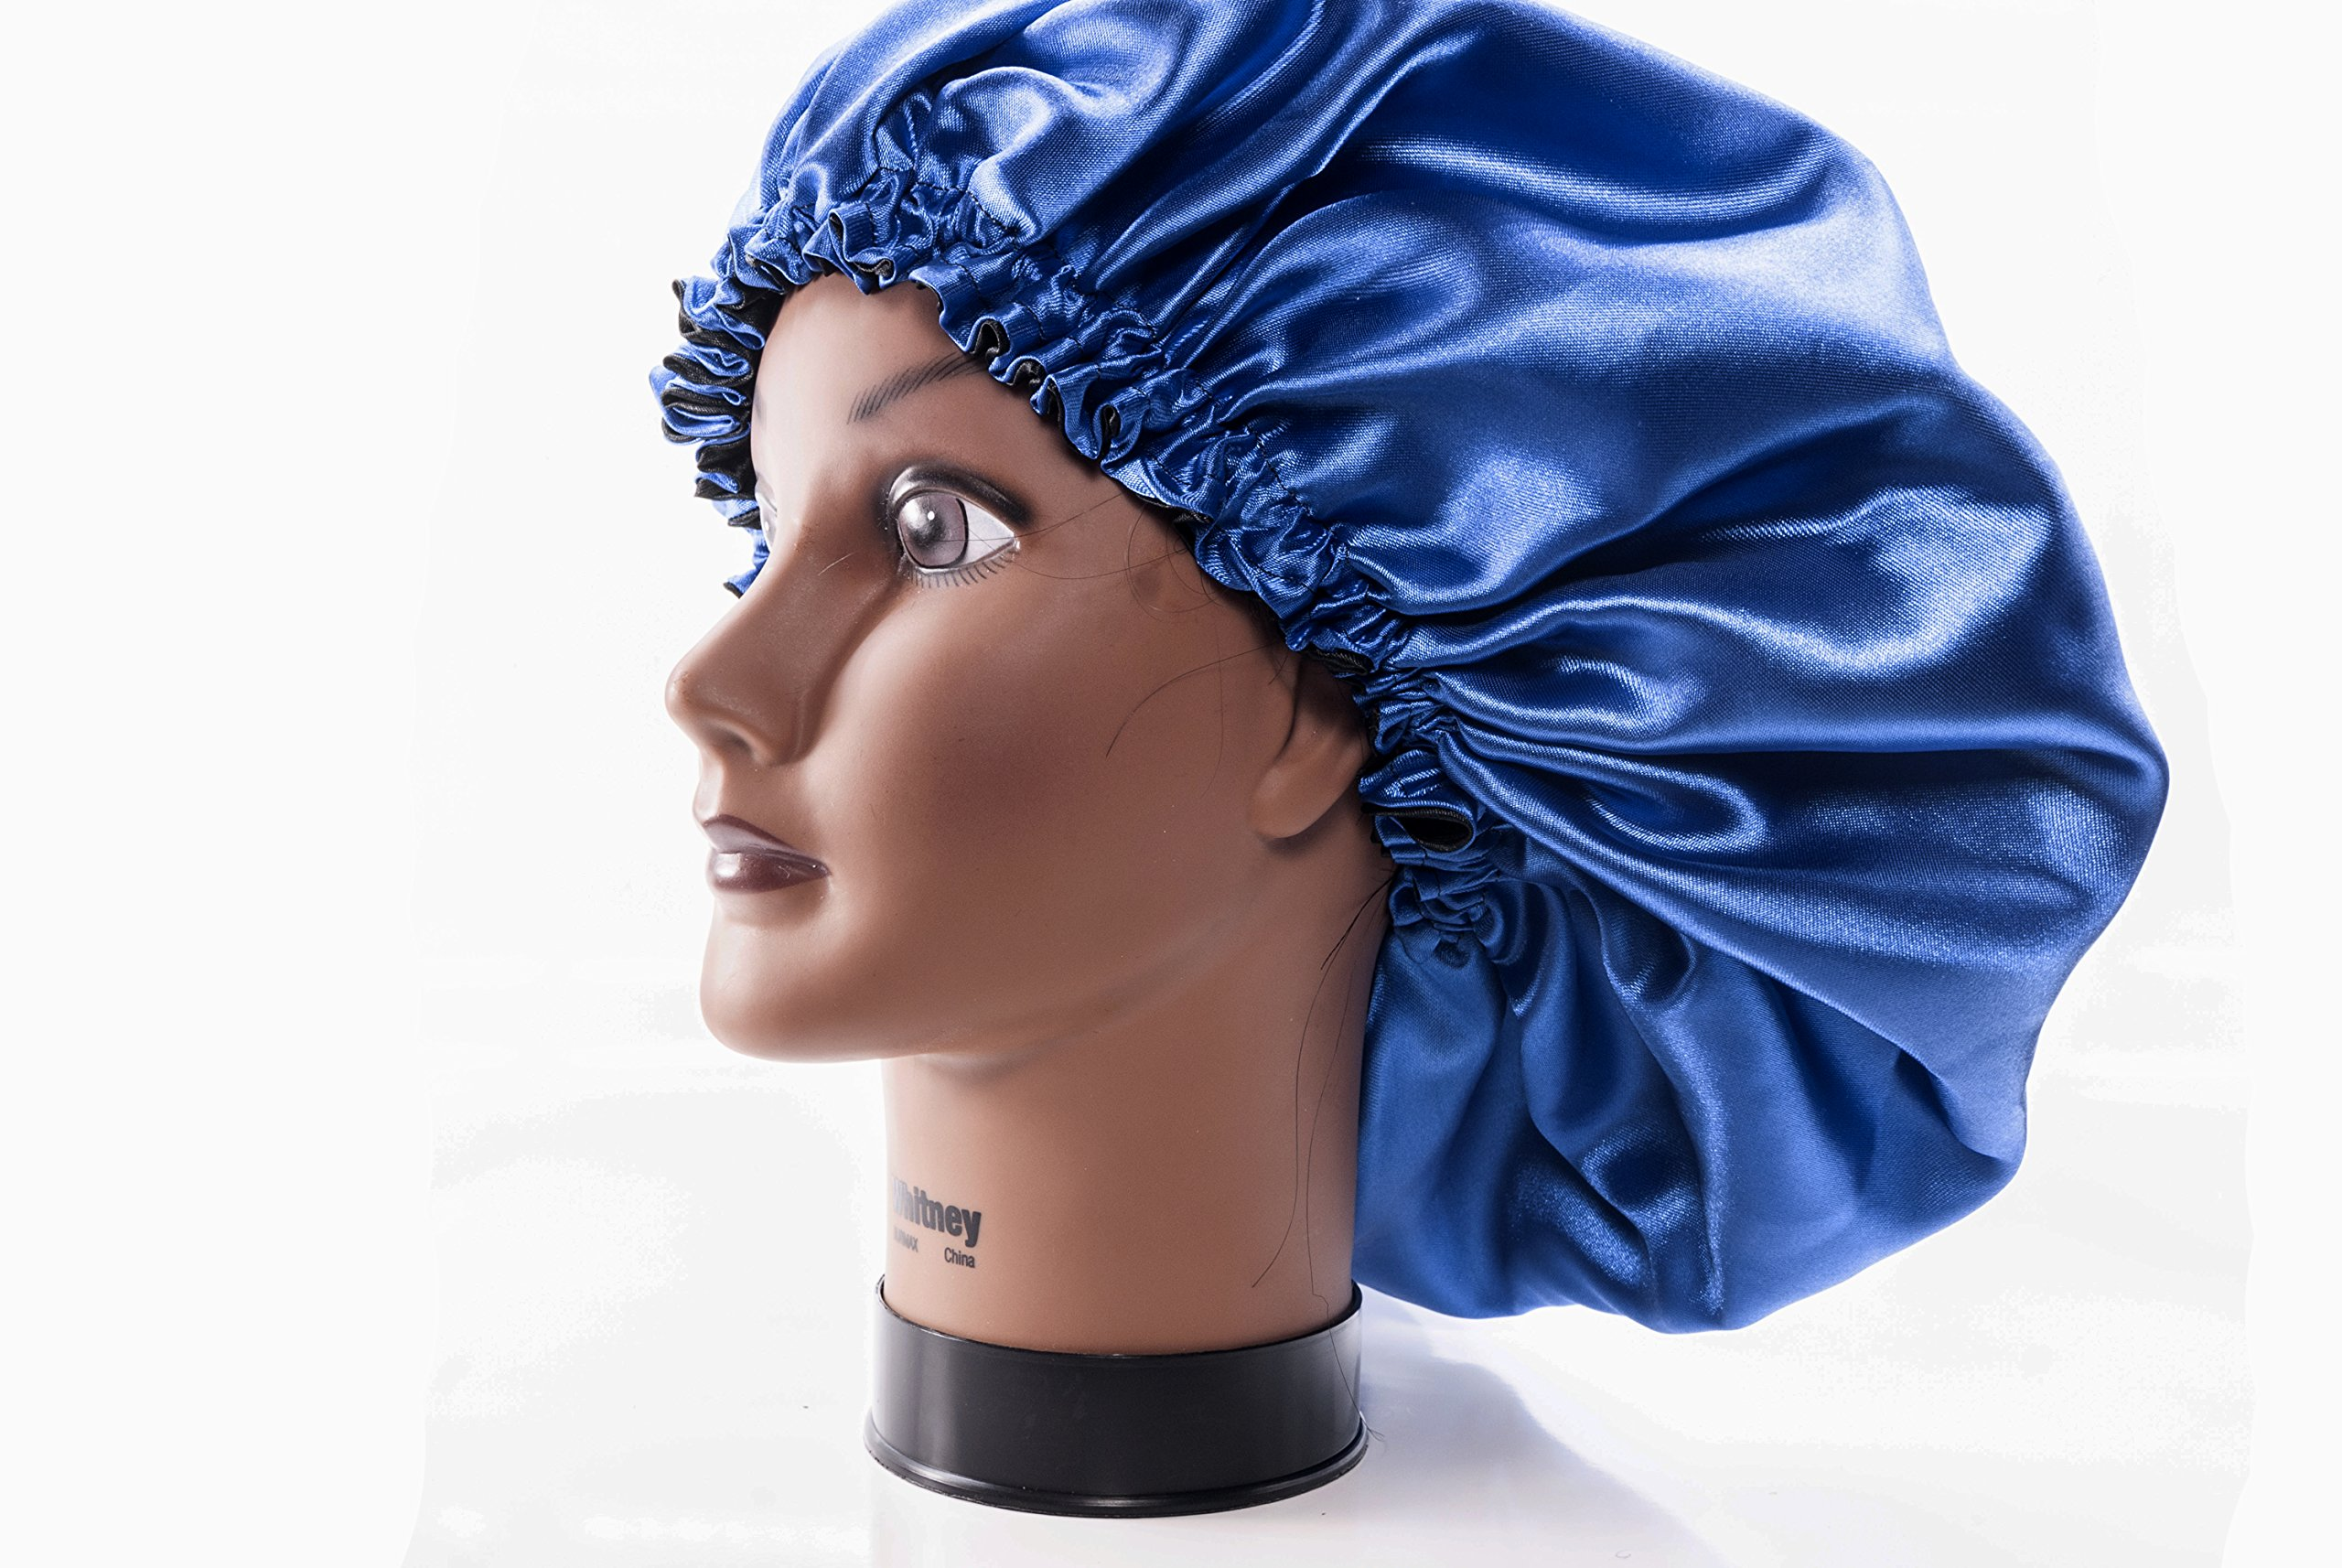 (X-Large, ROYAL BLUE) New 24'' Handmade Fully Reversible Luxuries Pure Satin Hair Bonnet Safe For All Hair Types - Most Beneficial Hair care Product Available- Royal Sensations Bonnet